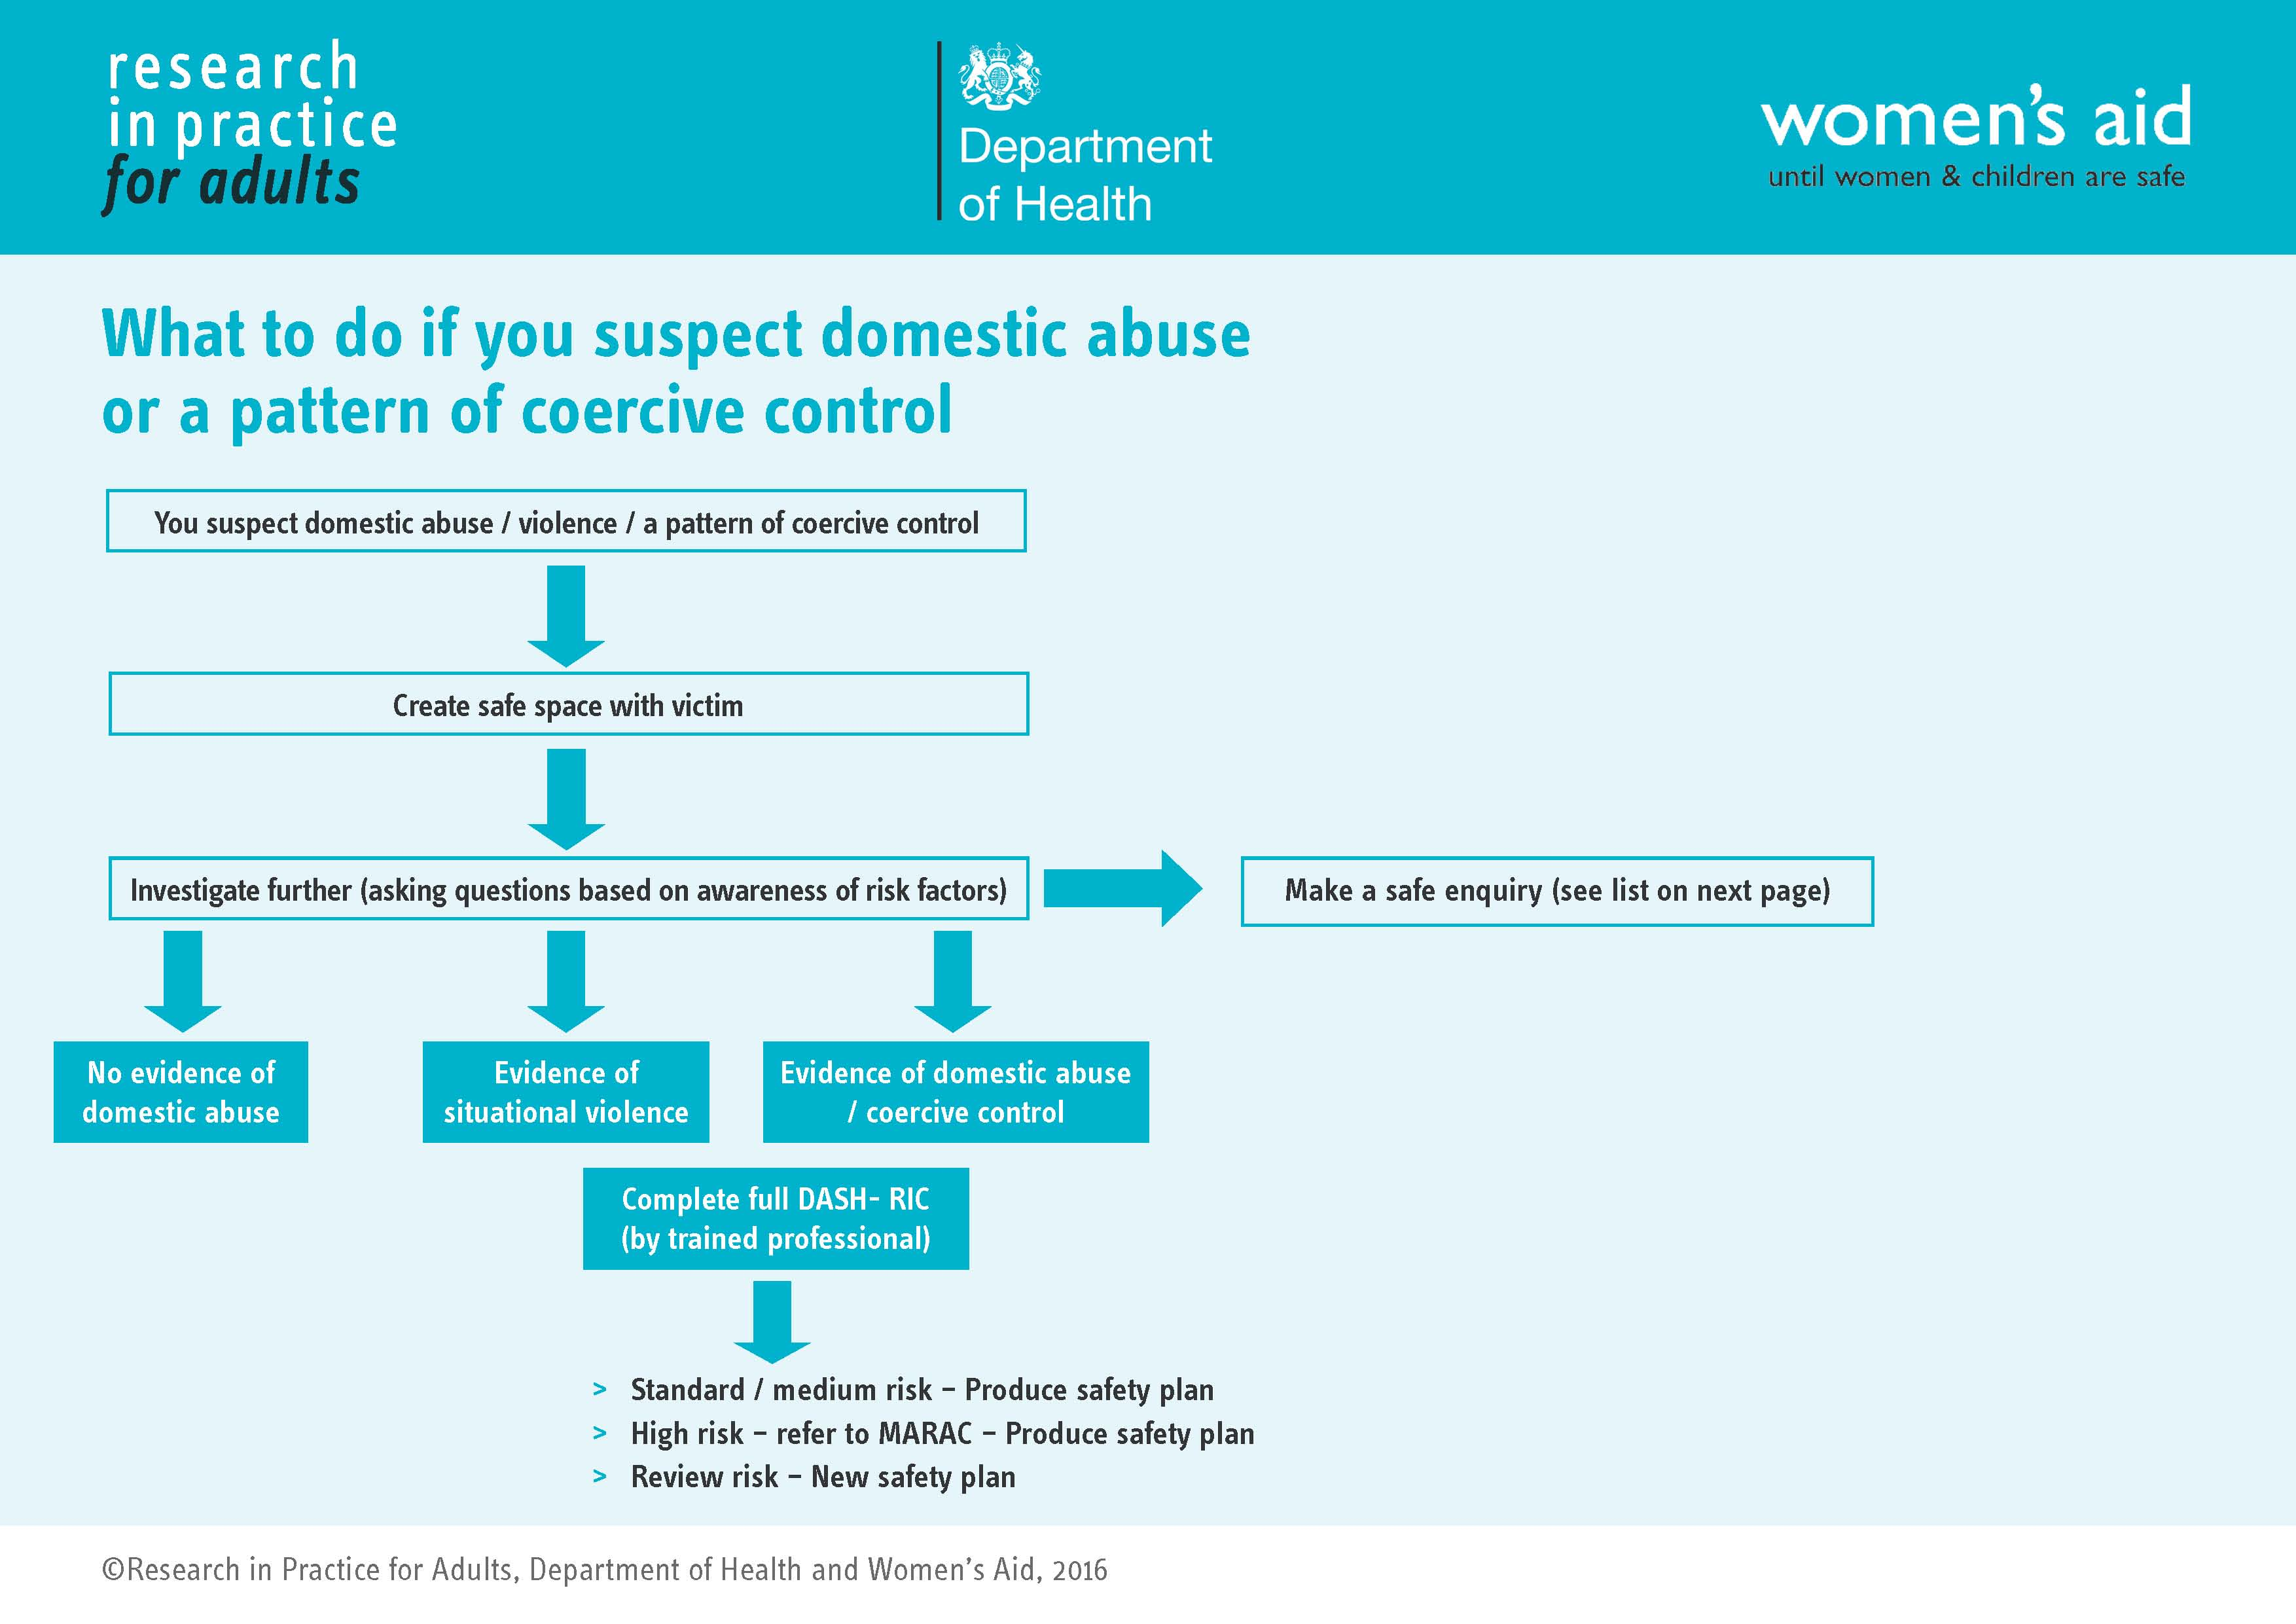 What to do if you suspect domestic abuse or a pattern of coercive control